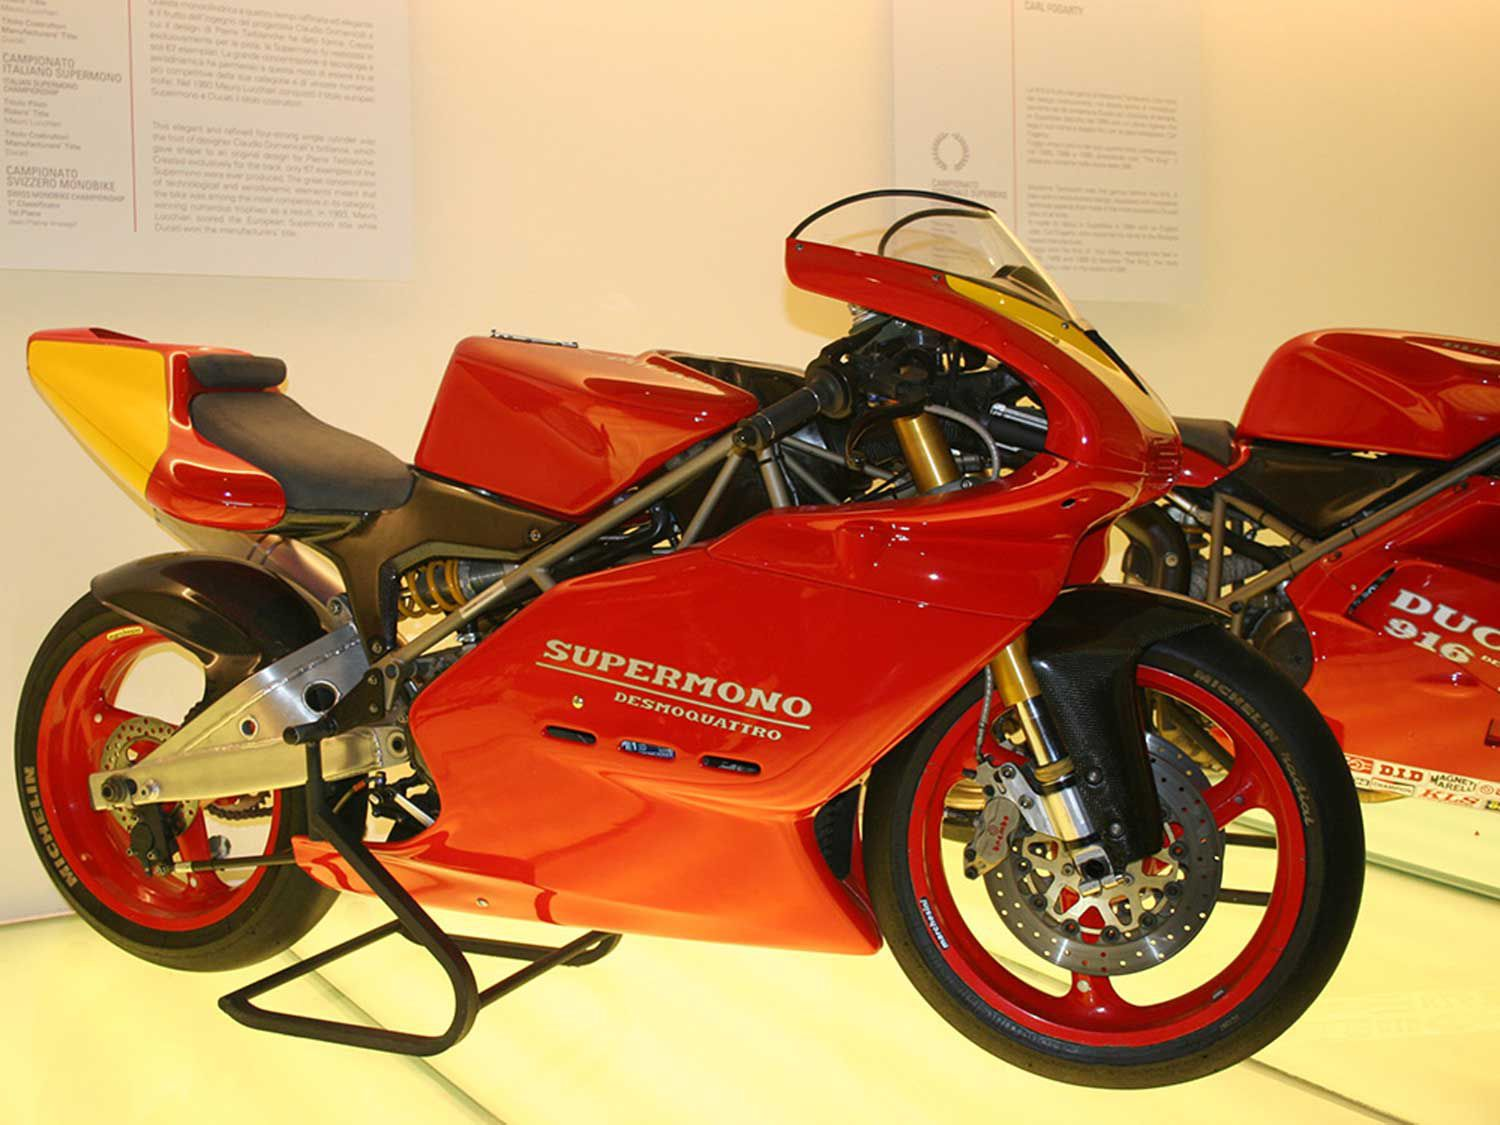 <strong>Ducati Supermono</strong> <br /> The Ducati Supermono: one of our all-time favorite singles.